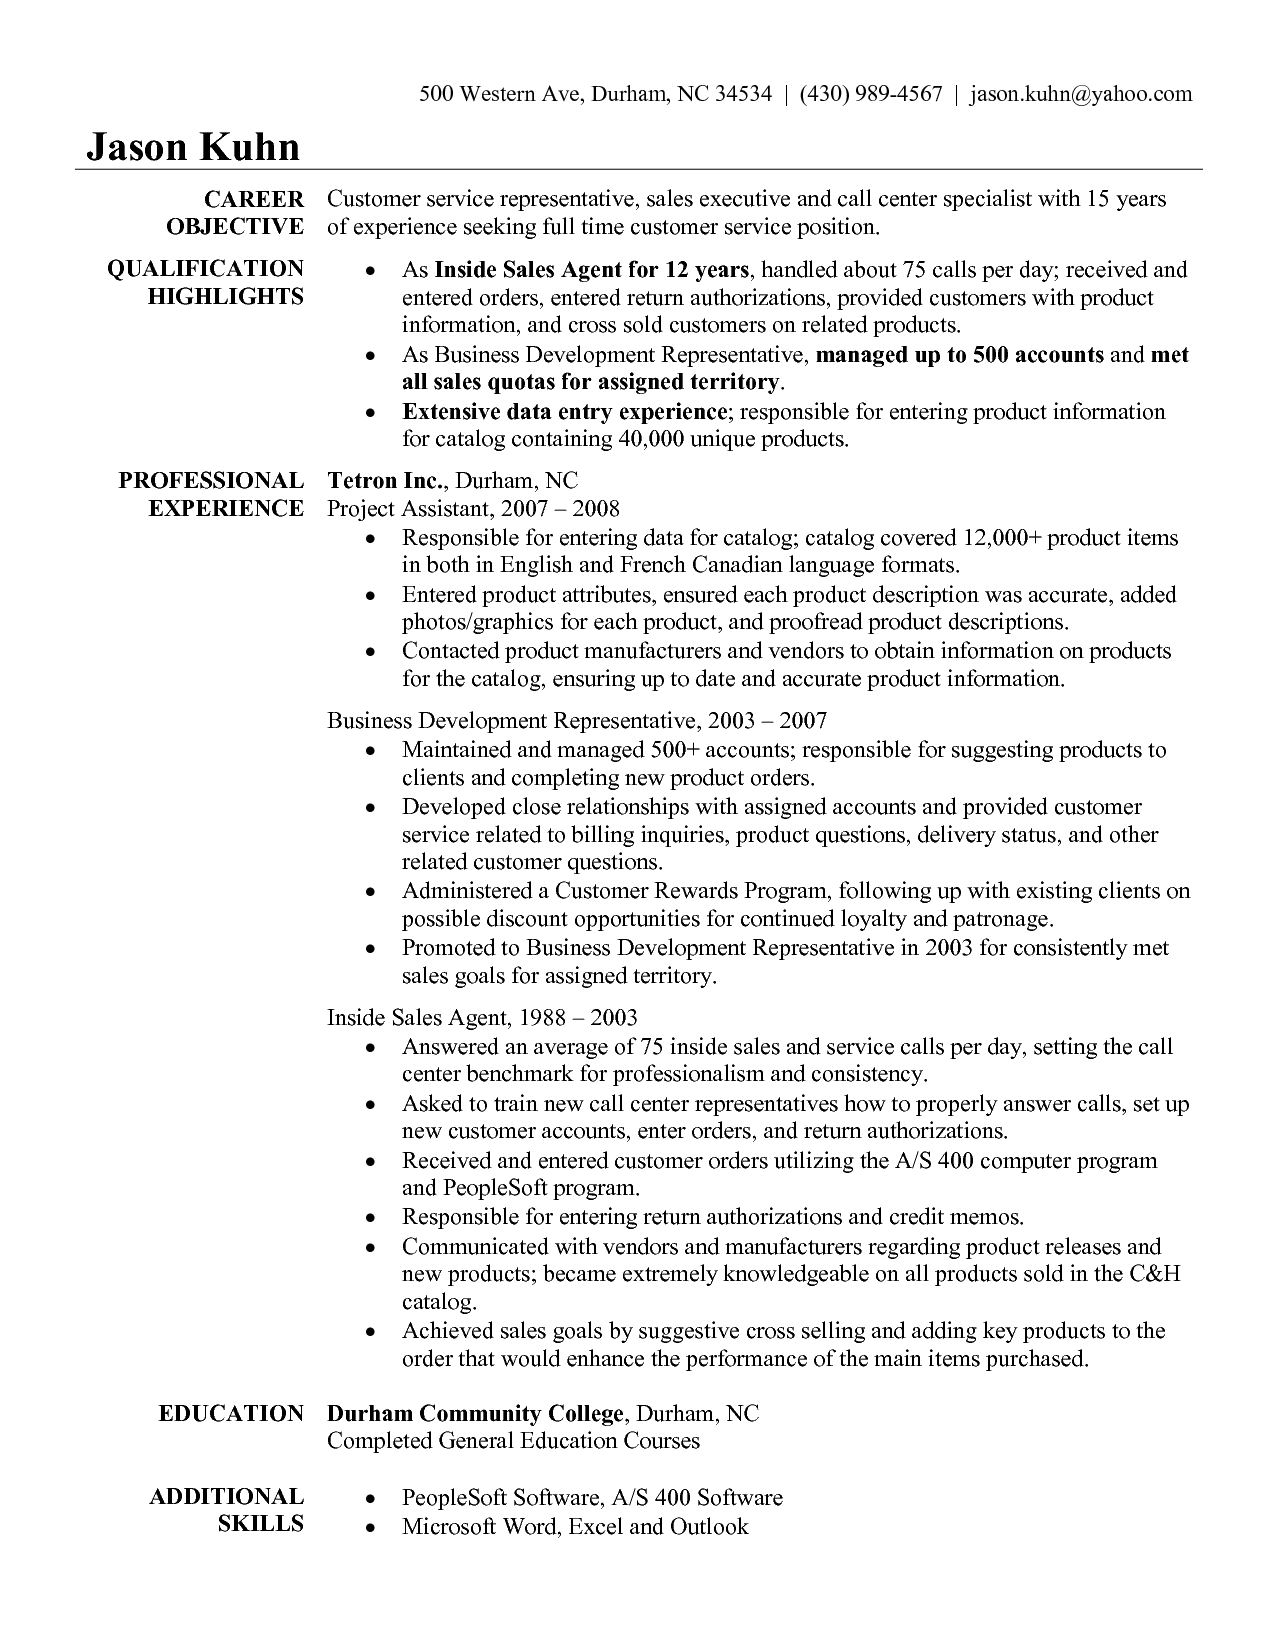 Call Center Resume Template Insurance Claims Representative Resume Sample  Httpwww